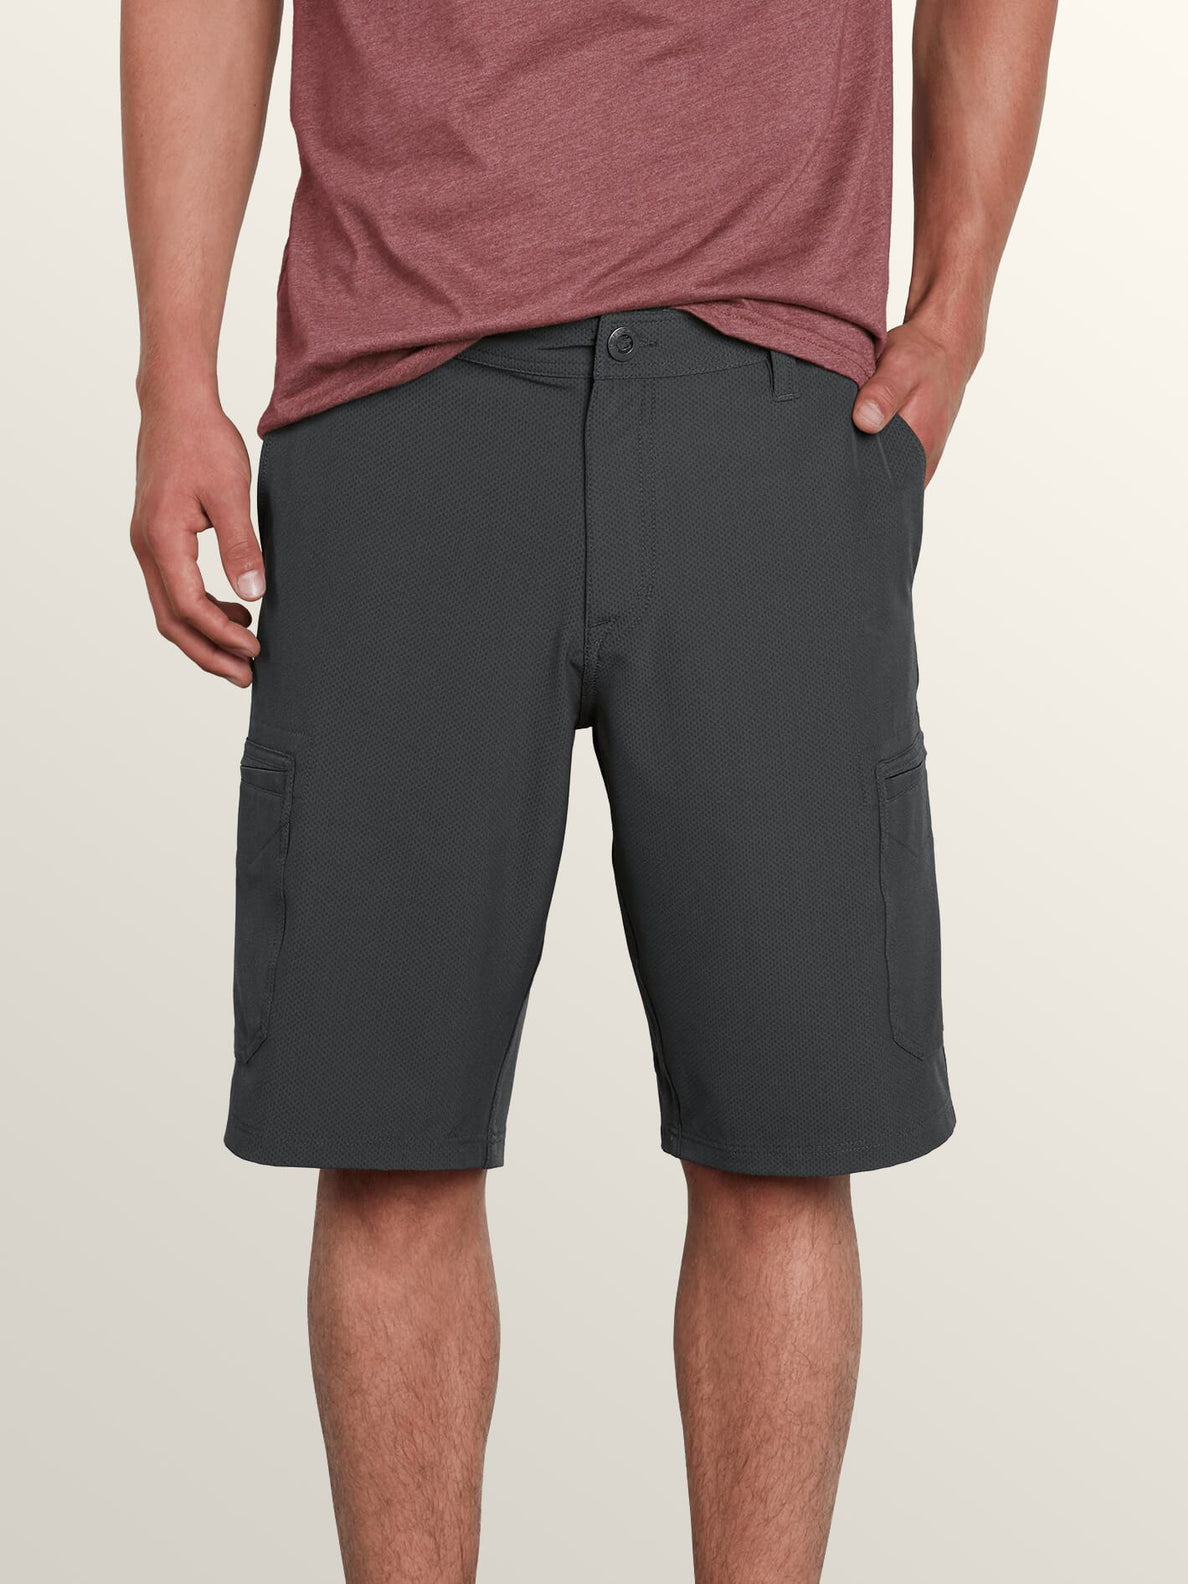 a09d8b79c9 Surf 'N Turf Dry Cargo Hybrid Shorts In Charcoal Heather, ...